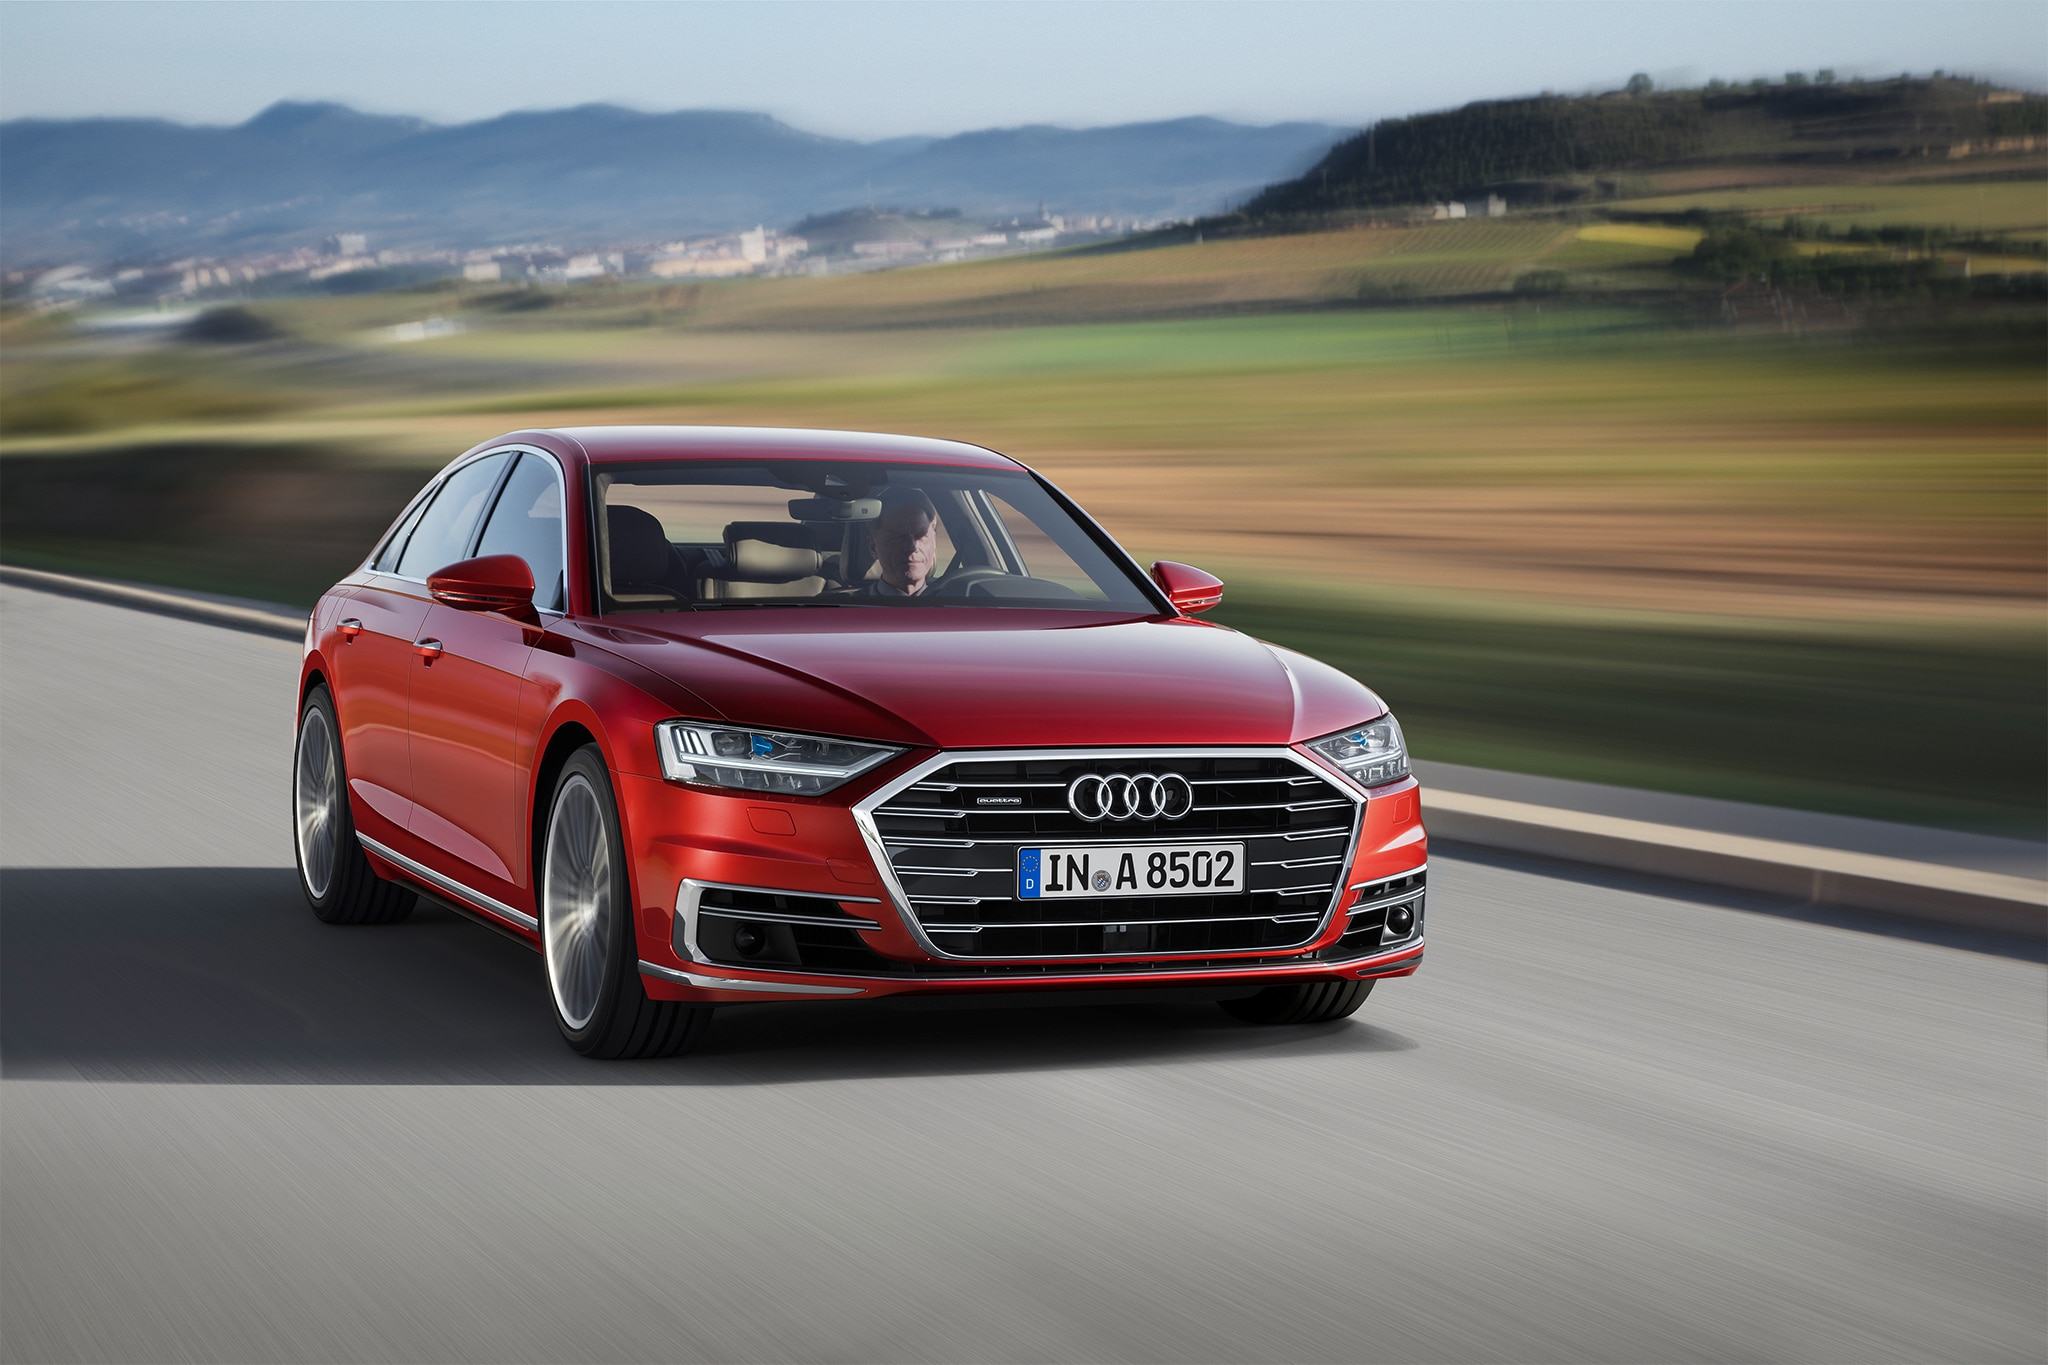 2019 Audi A8 Front Three Quarter In Motion 01